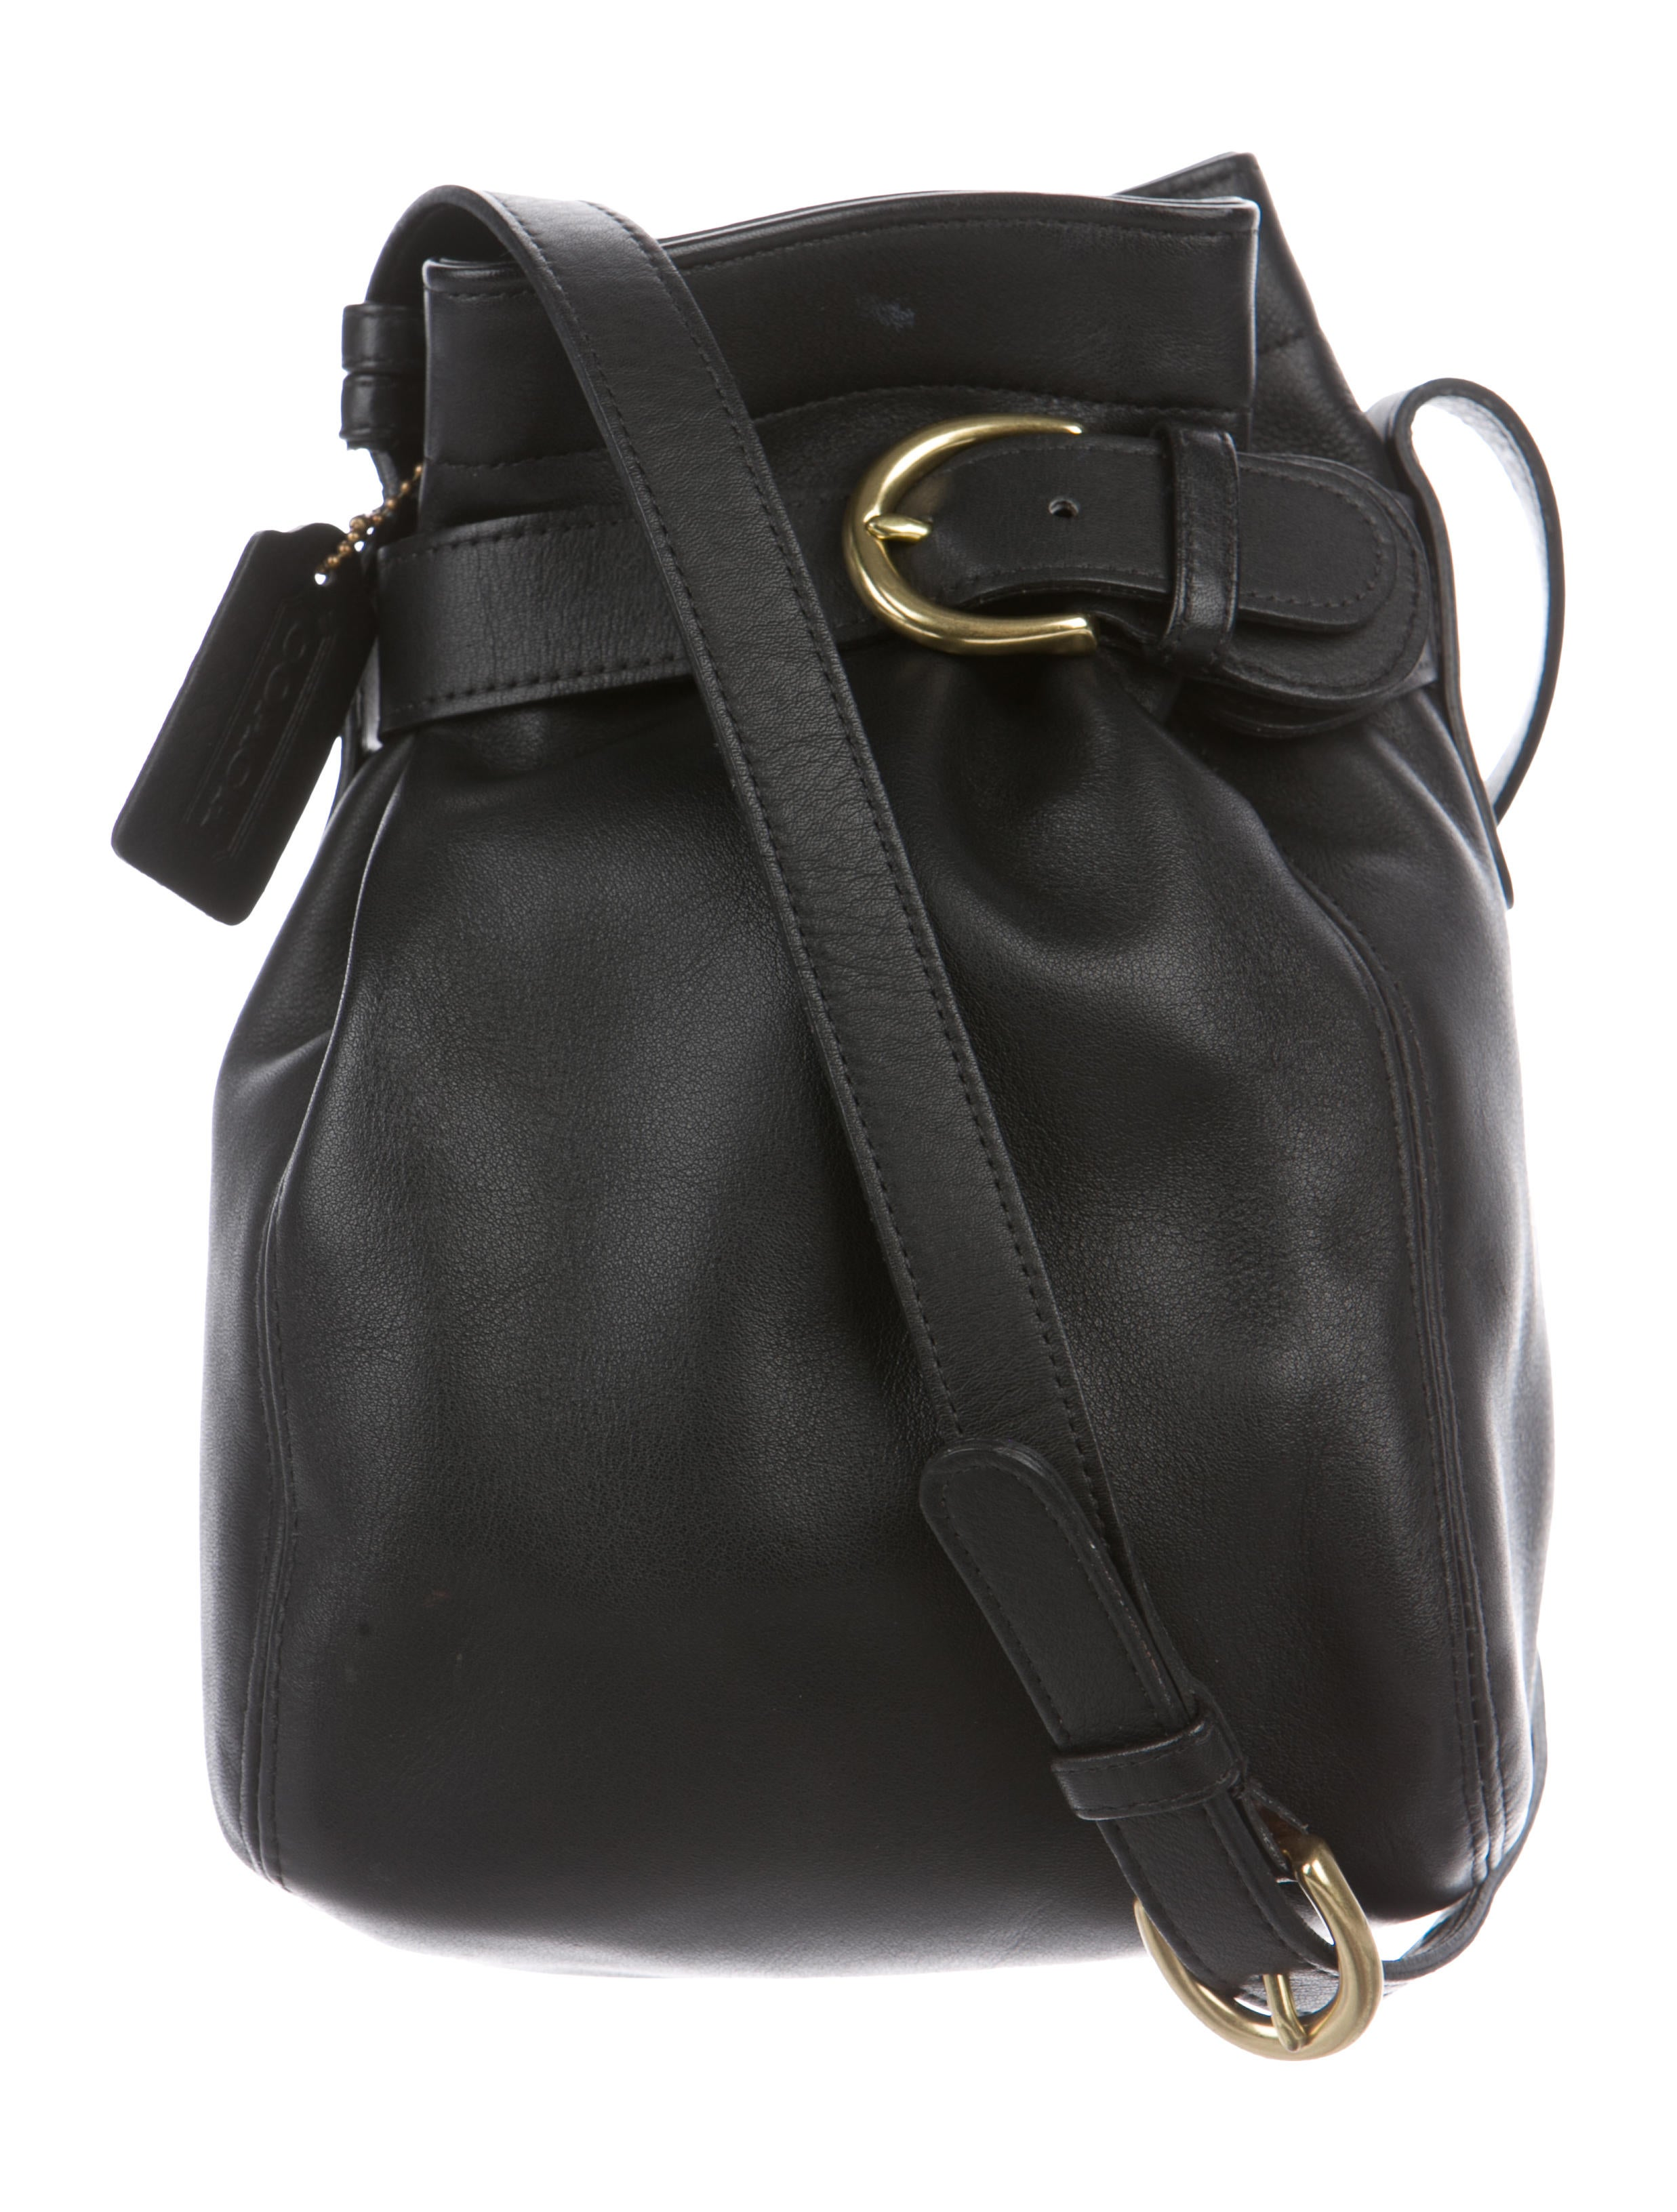 65ace328b86f Coach Belted Leather Bucket Bag - Handbags - CCH24883